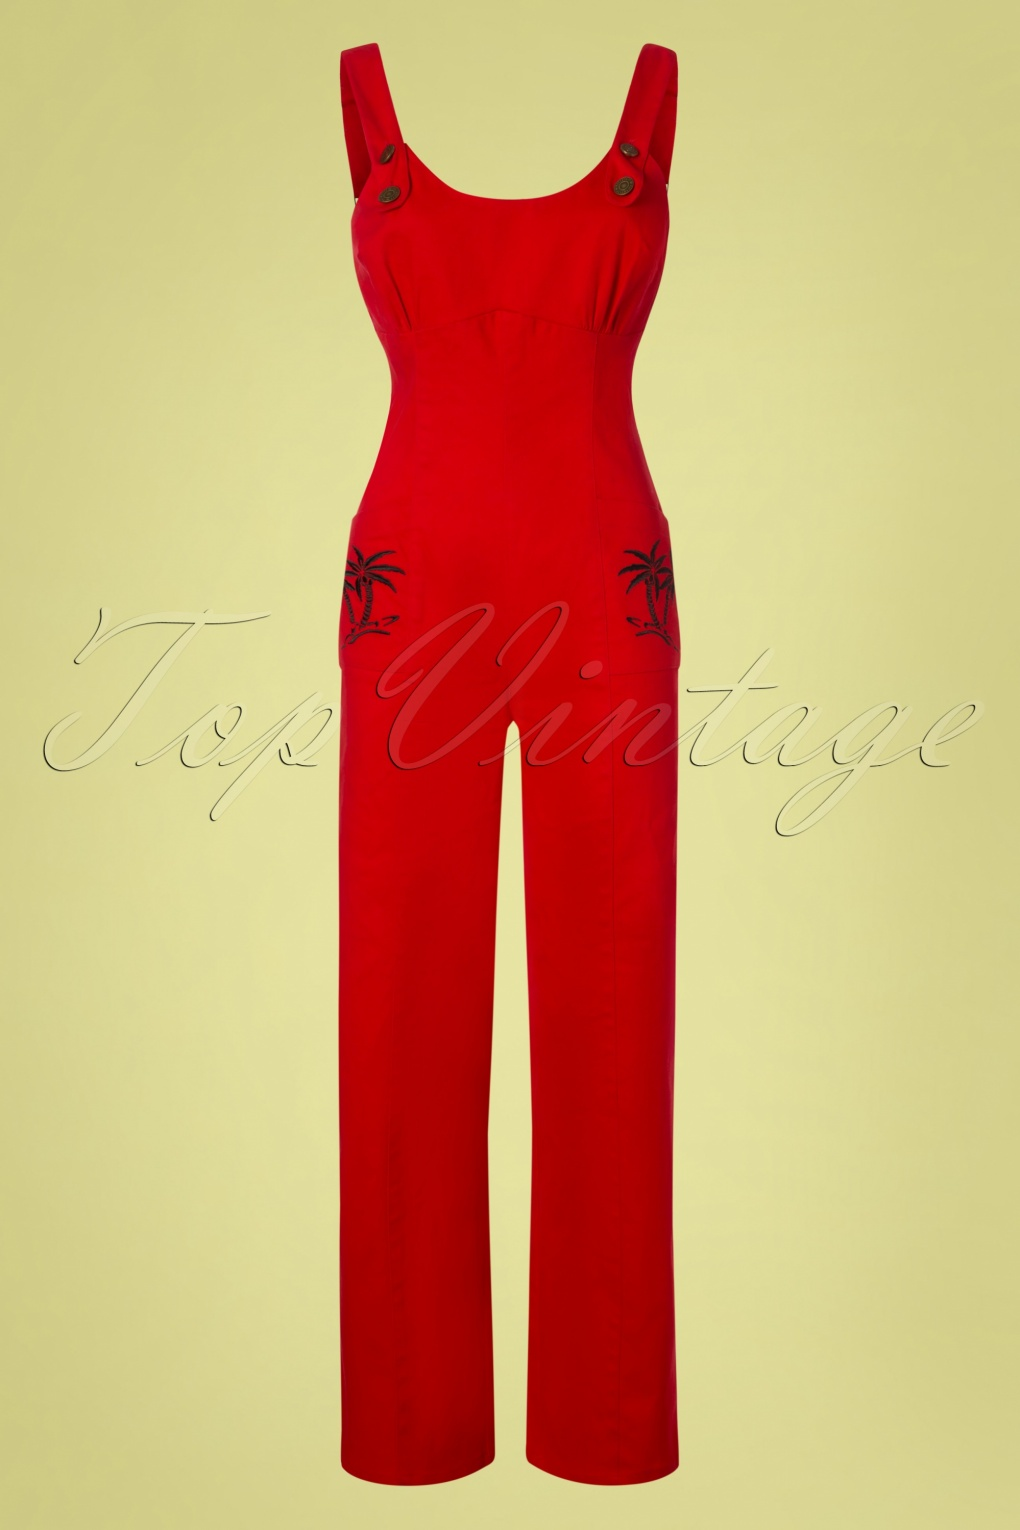 1950s Fashion History: Women's Clothing 50s Jenna Palm Tree Dungarees in Red £67.96 AT vintagedancer.com